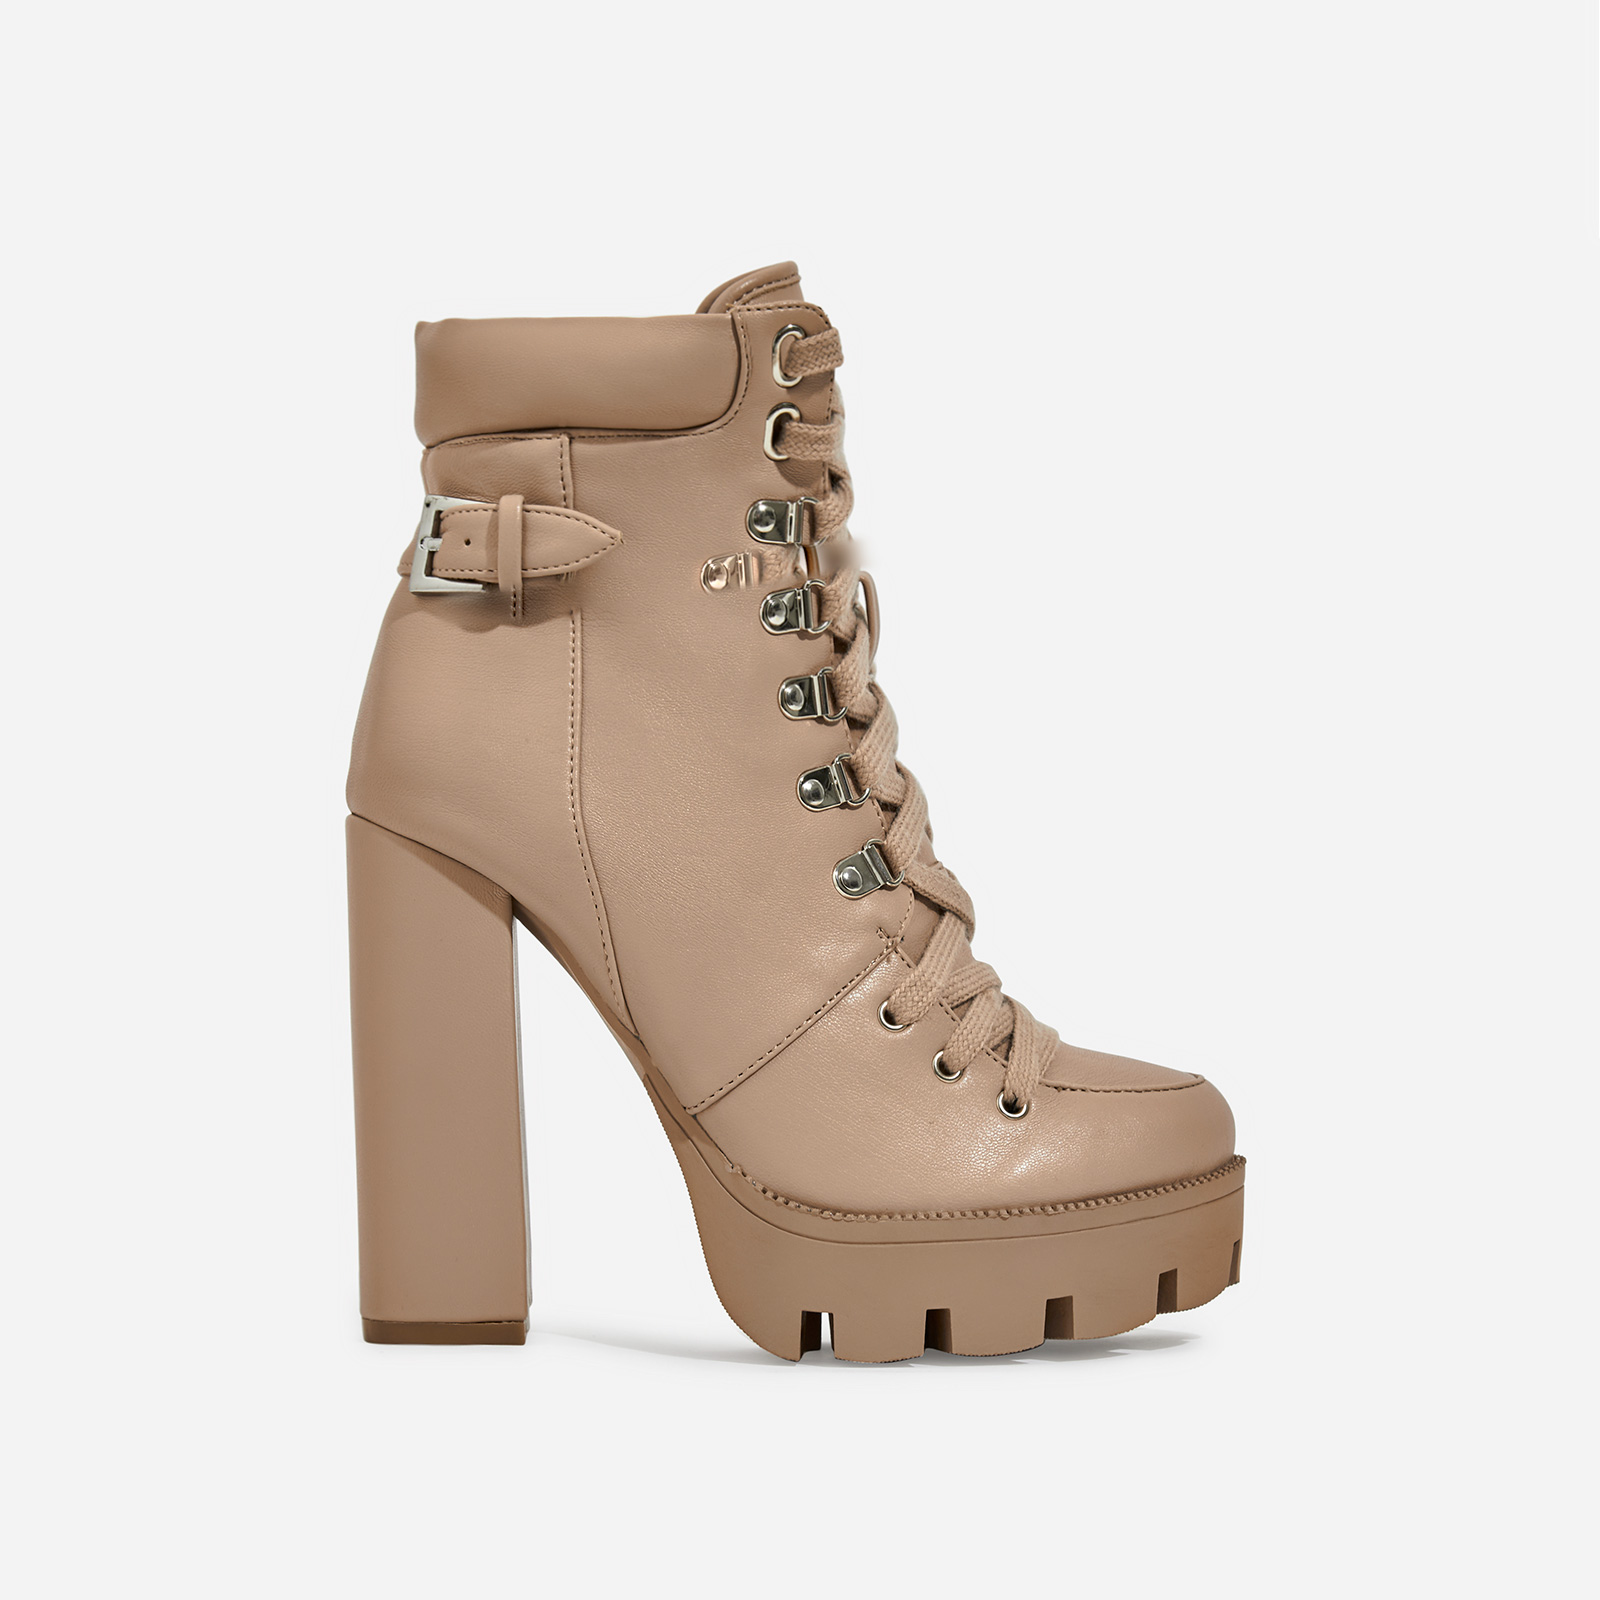 Veera Platform Lace Up Ankle Biker Boot In Nude Faux Leather